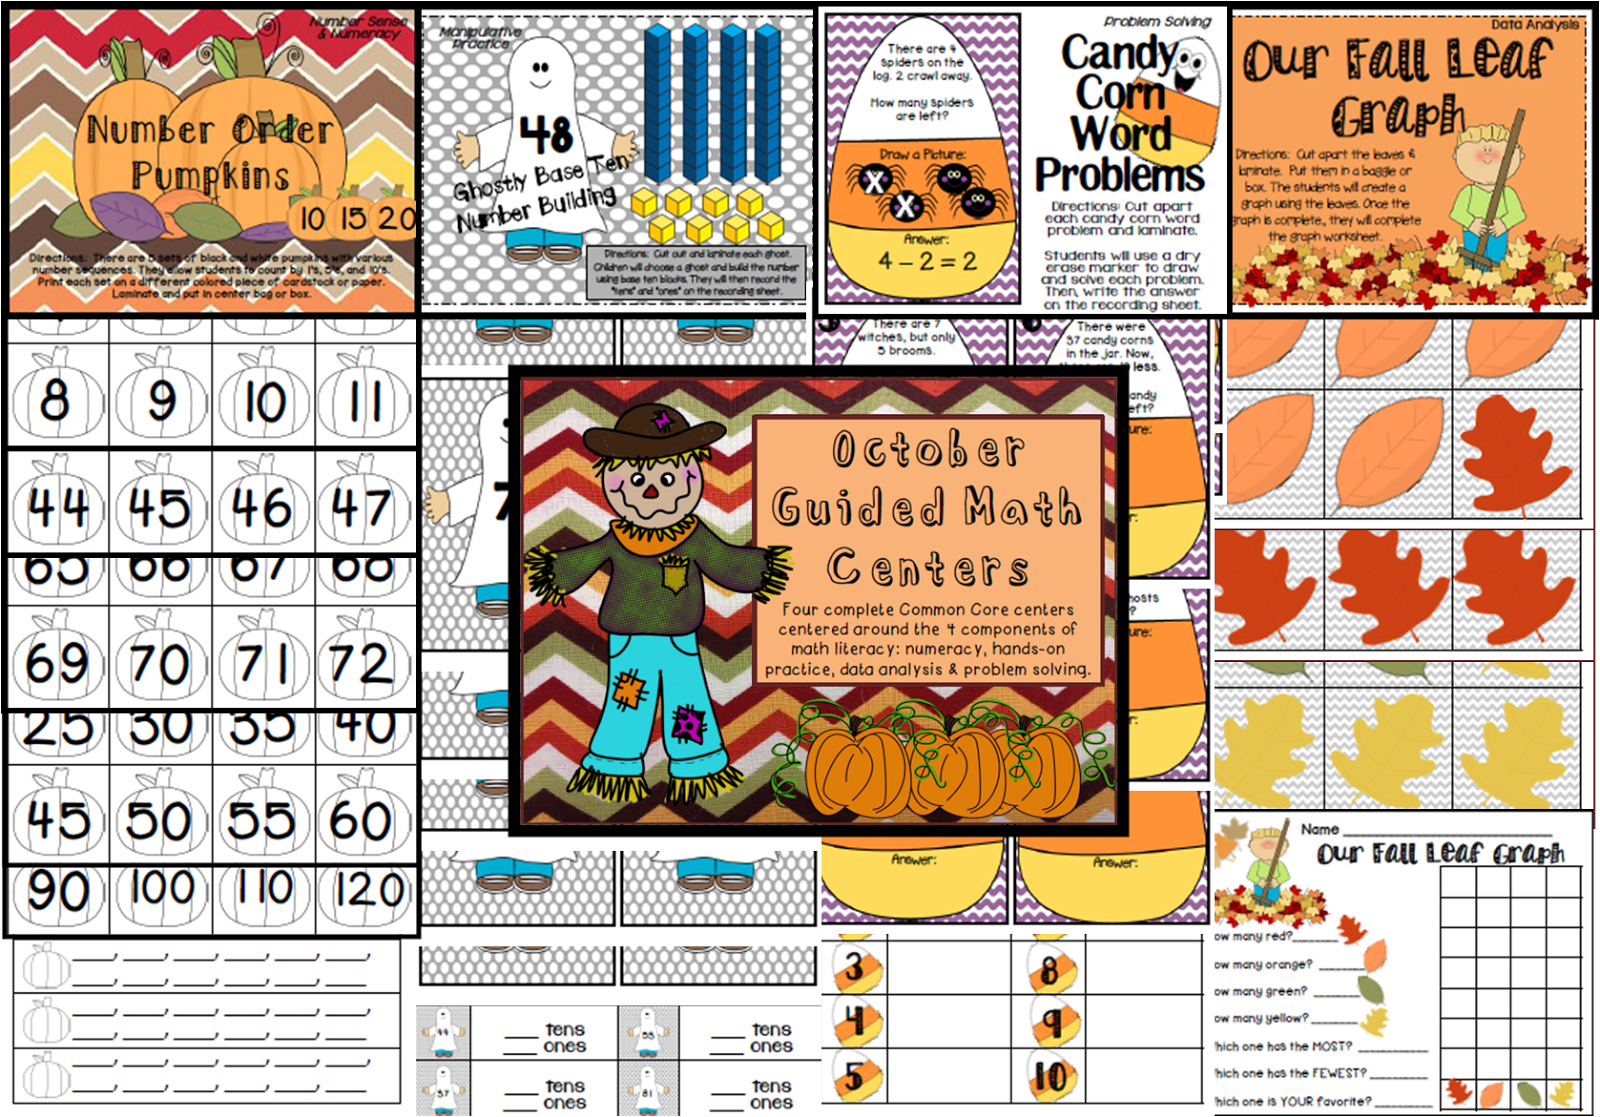 http://www.teacherspayteachers.com/Product/October-Guided-Math-Centers-910999